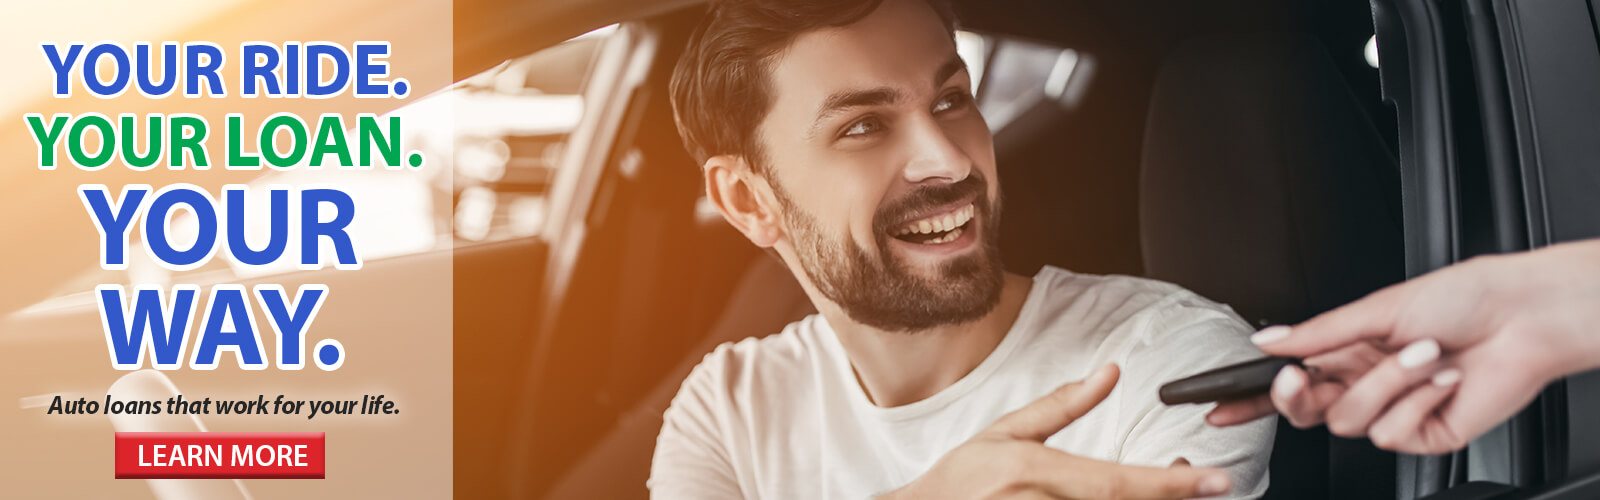 YOUR RIDE. YOUR LOAN. YOUR WAY. Auto loans that work for your life. Click here to learn more.